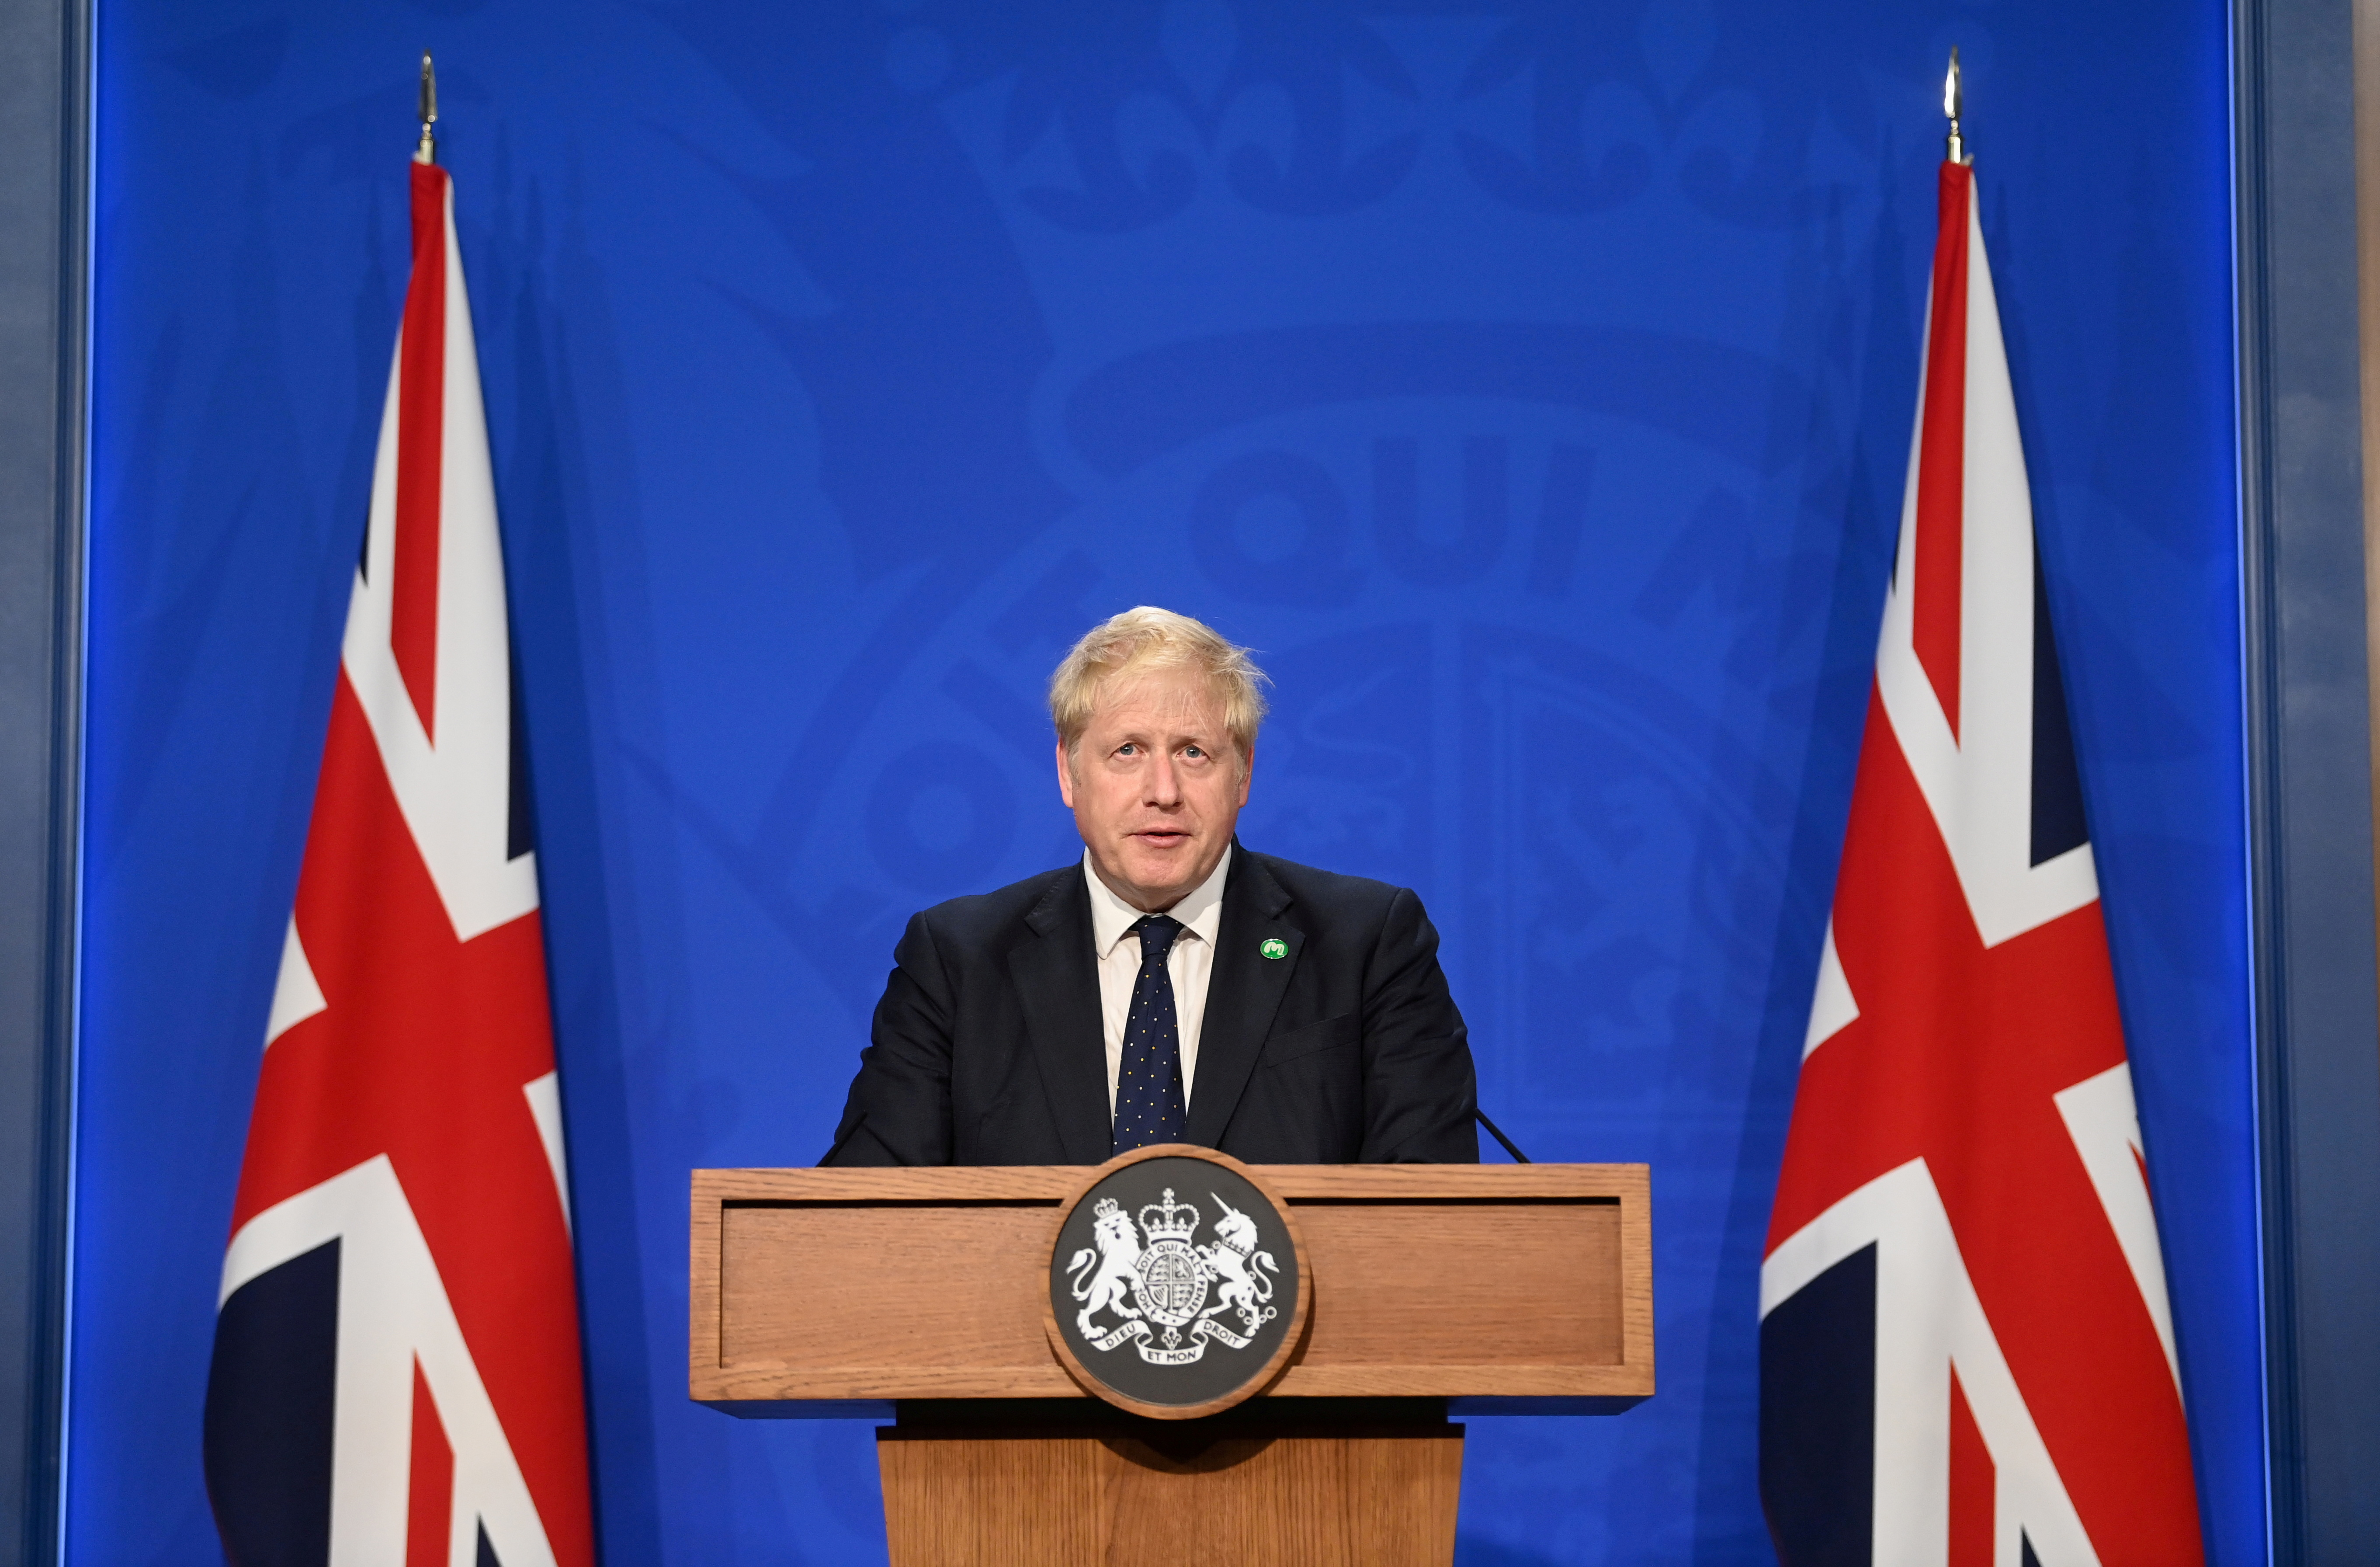 Britain?s Prime Minister Boris Johnson speaks at a news conference in Downing Street, in London, Britain, September 7, 2021. REUTERS/Toby Melville